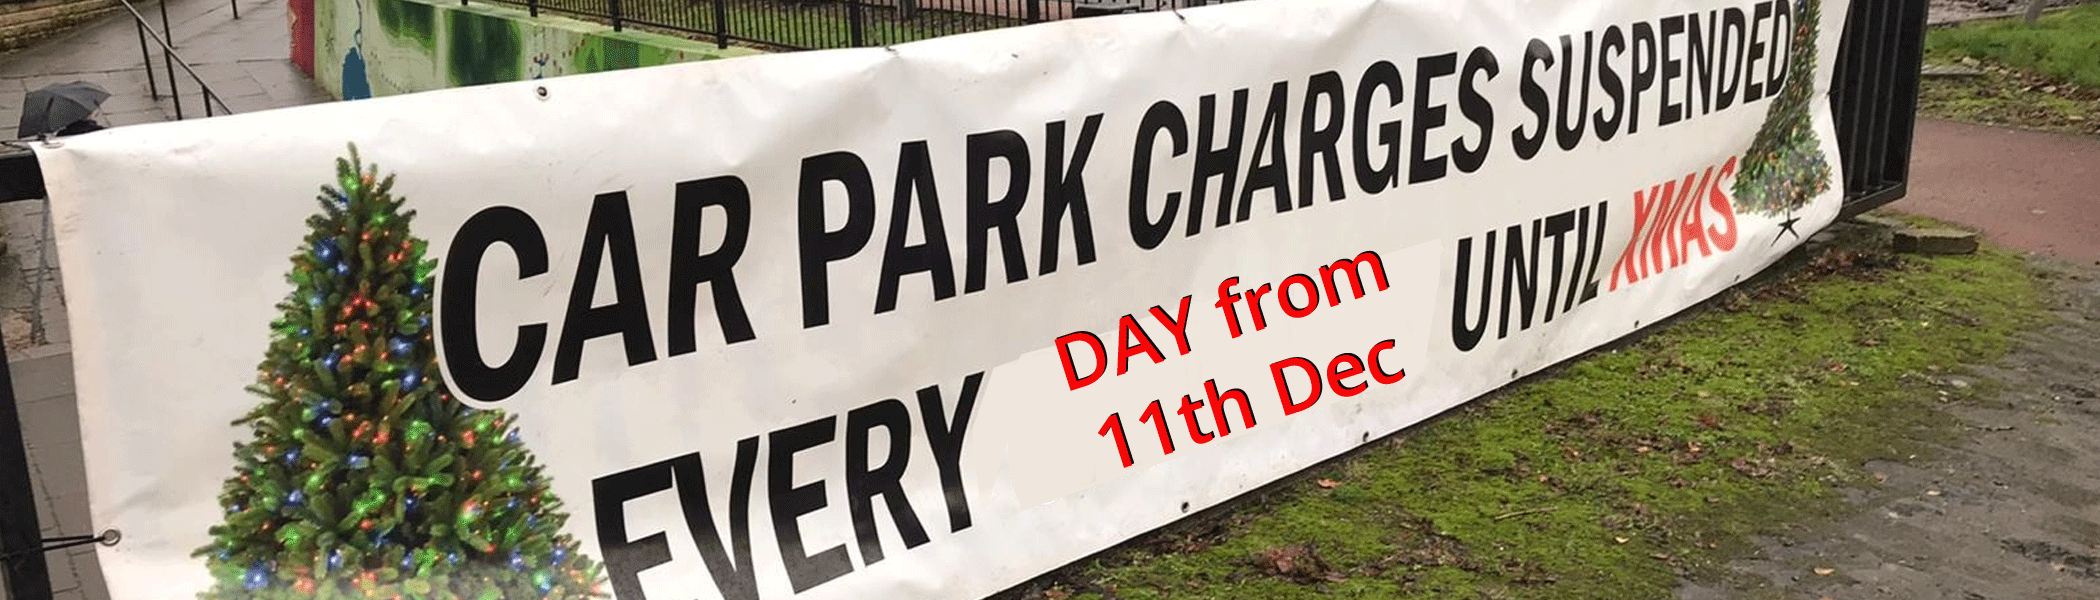 Car Parking Suspended from 11th Dec